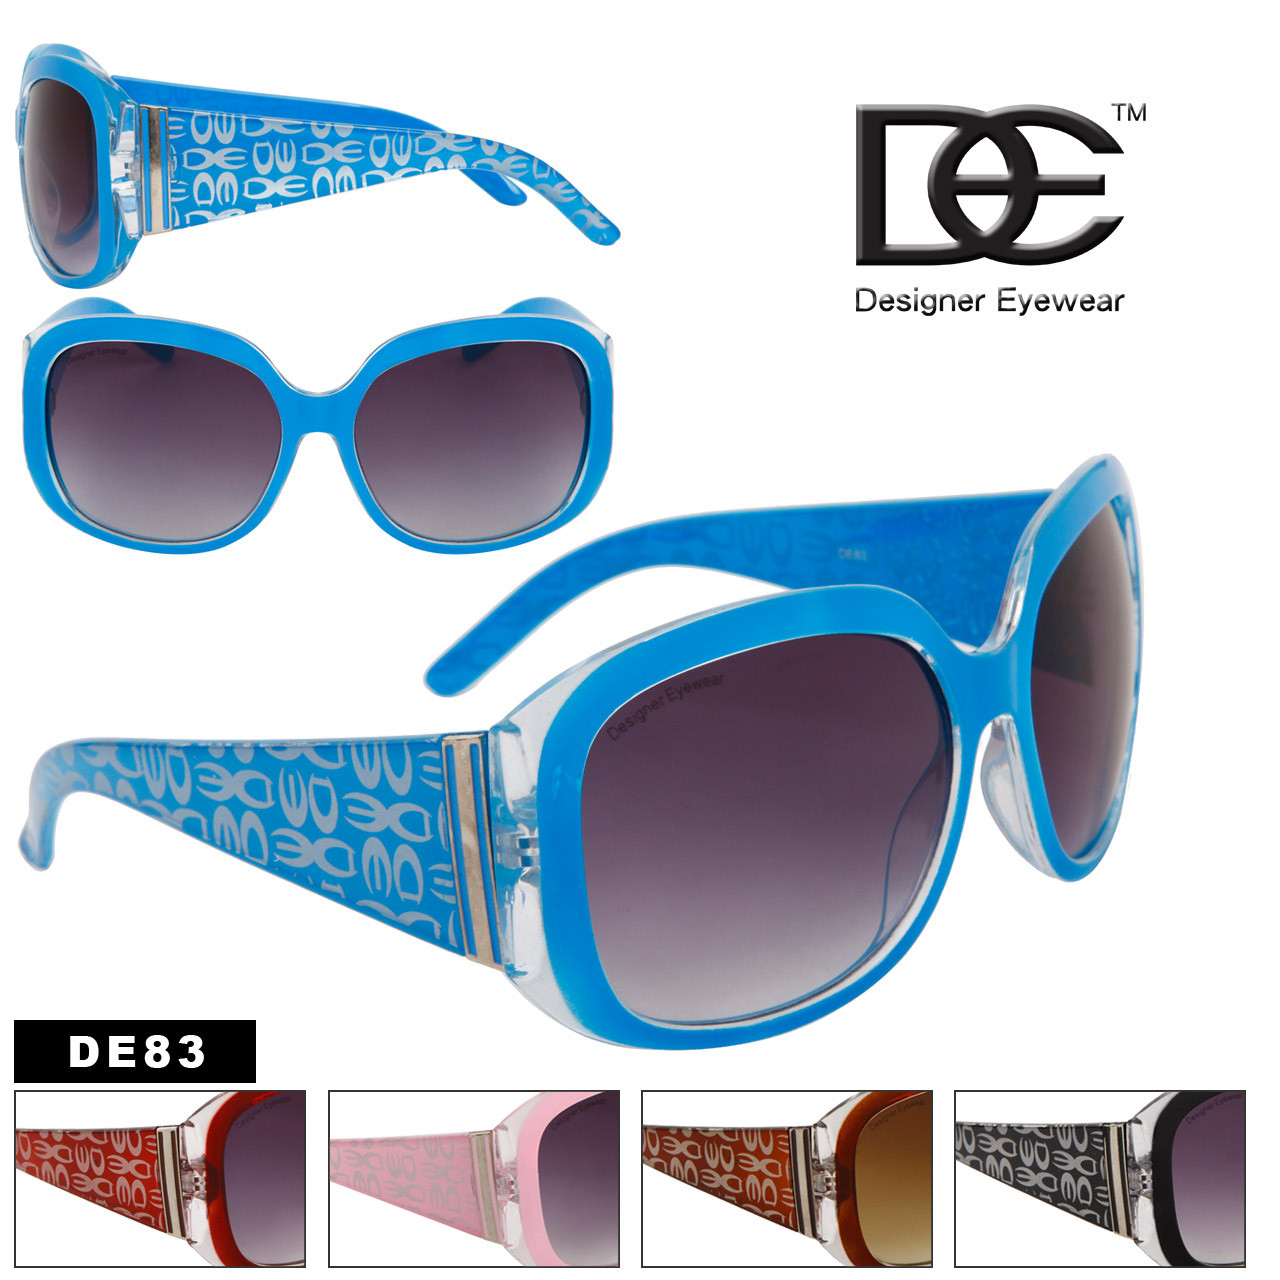 DE™ Bulk Fashion Sunglasses - Style # DE83